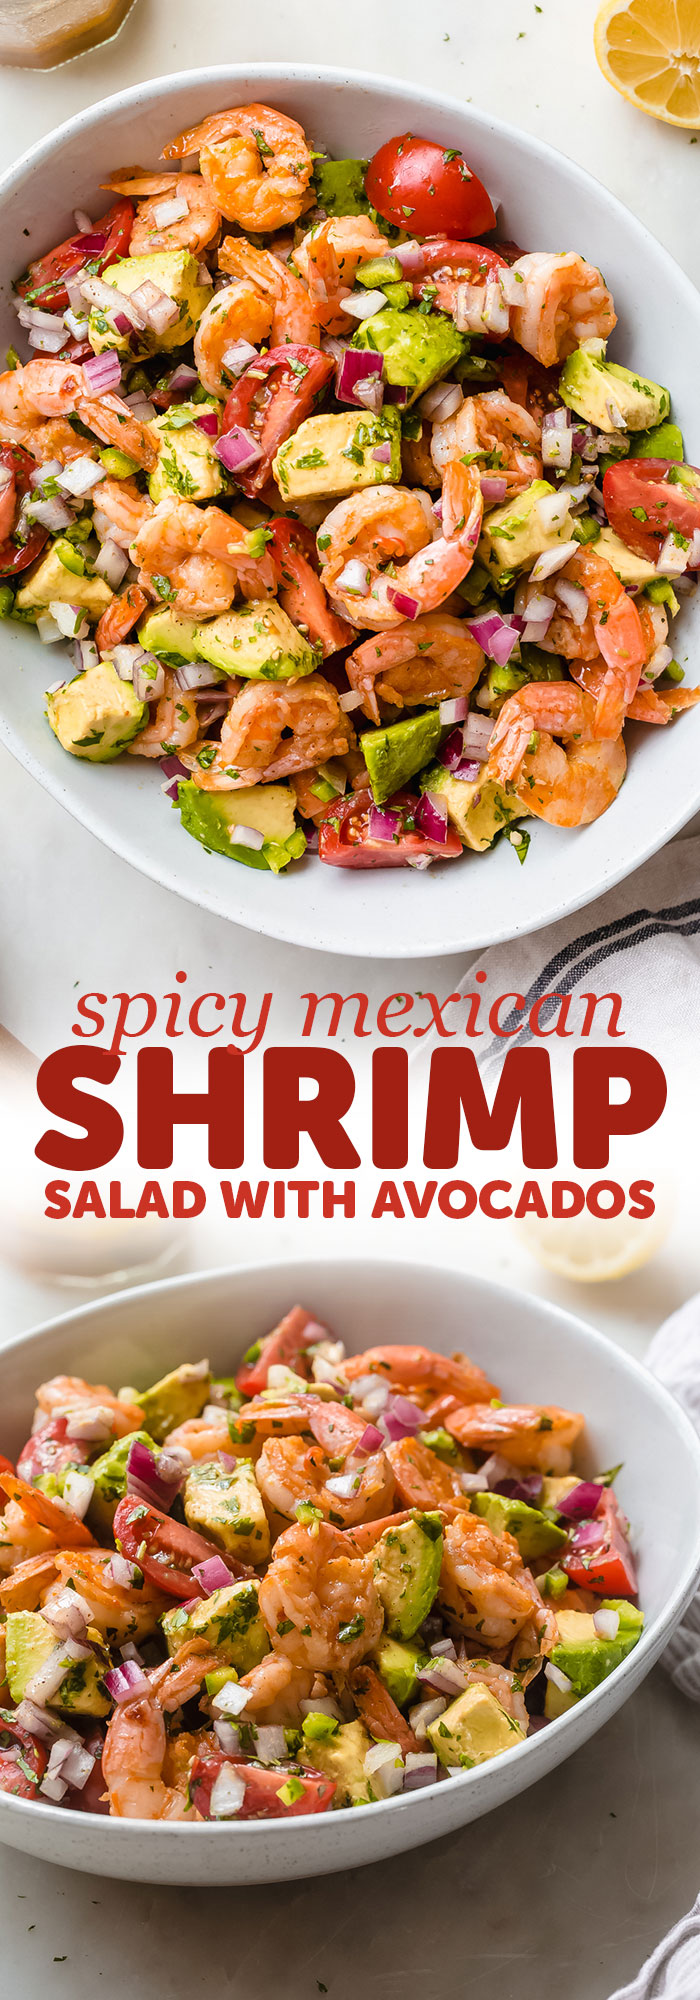 Mexican Shrimp Salad - Just 15 minutes to prepare from start to finish! Loaded with buttery avocados, tomatoes, sautéed shrimp, and a refreshing dressing! #shrimpsalad #mexicanshrimpsalad #shrimpavocadosalad #salad #dinnerrecipes #shrimprecipes | Littlespicejar.com